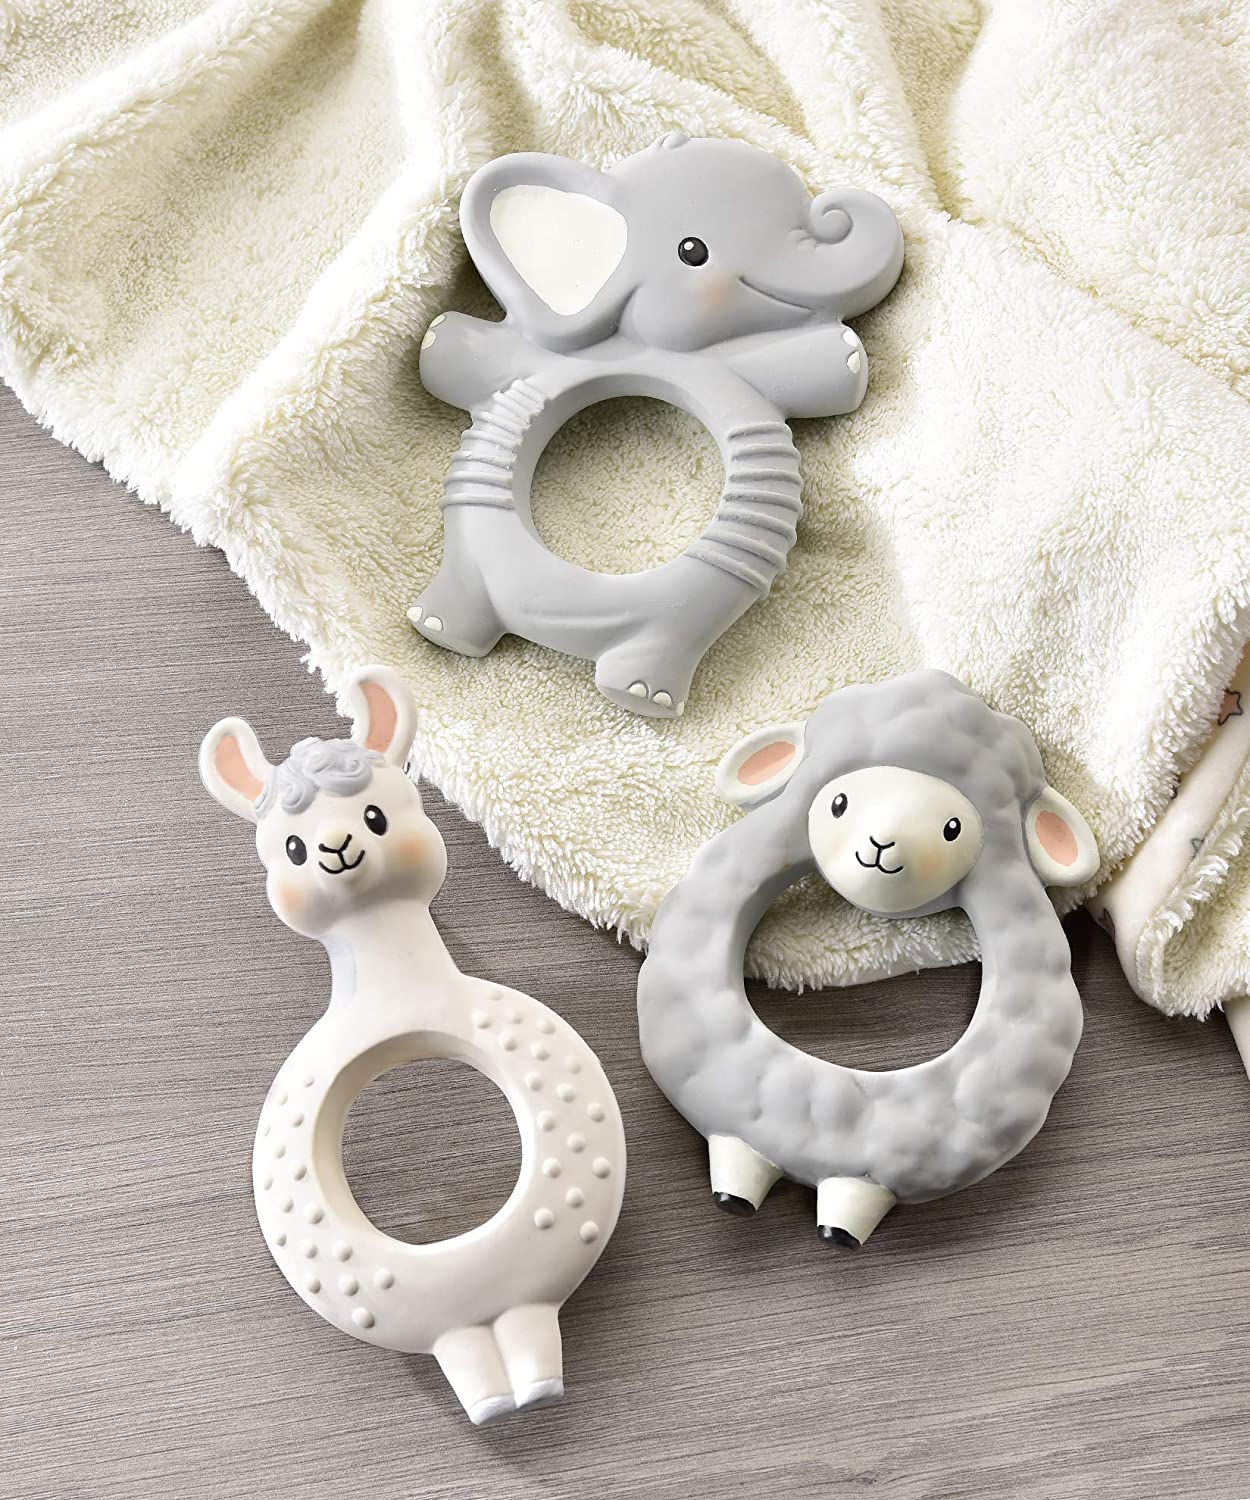 Sheep Character Textured Gray 4 x 3 Natural Rubber Baby Teething Ring Toy Gift Craft